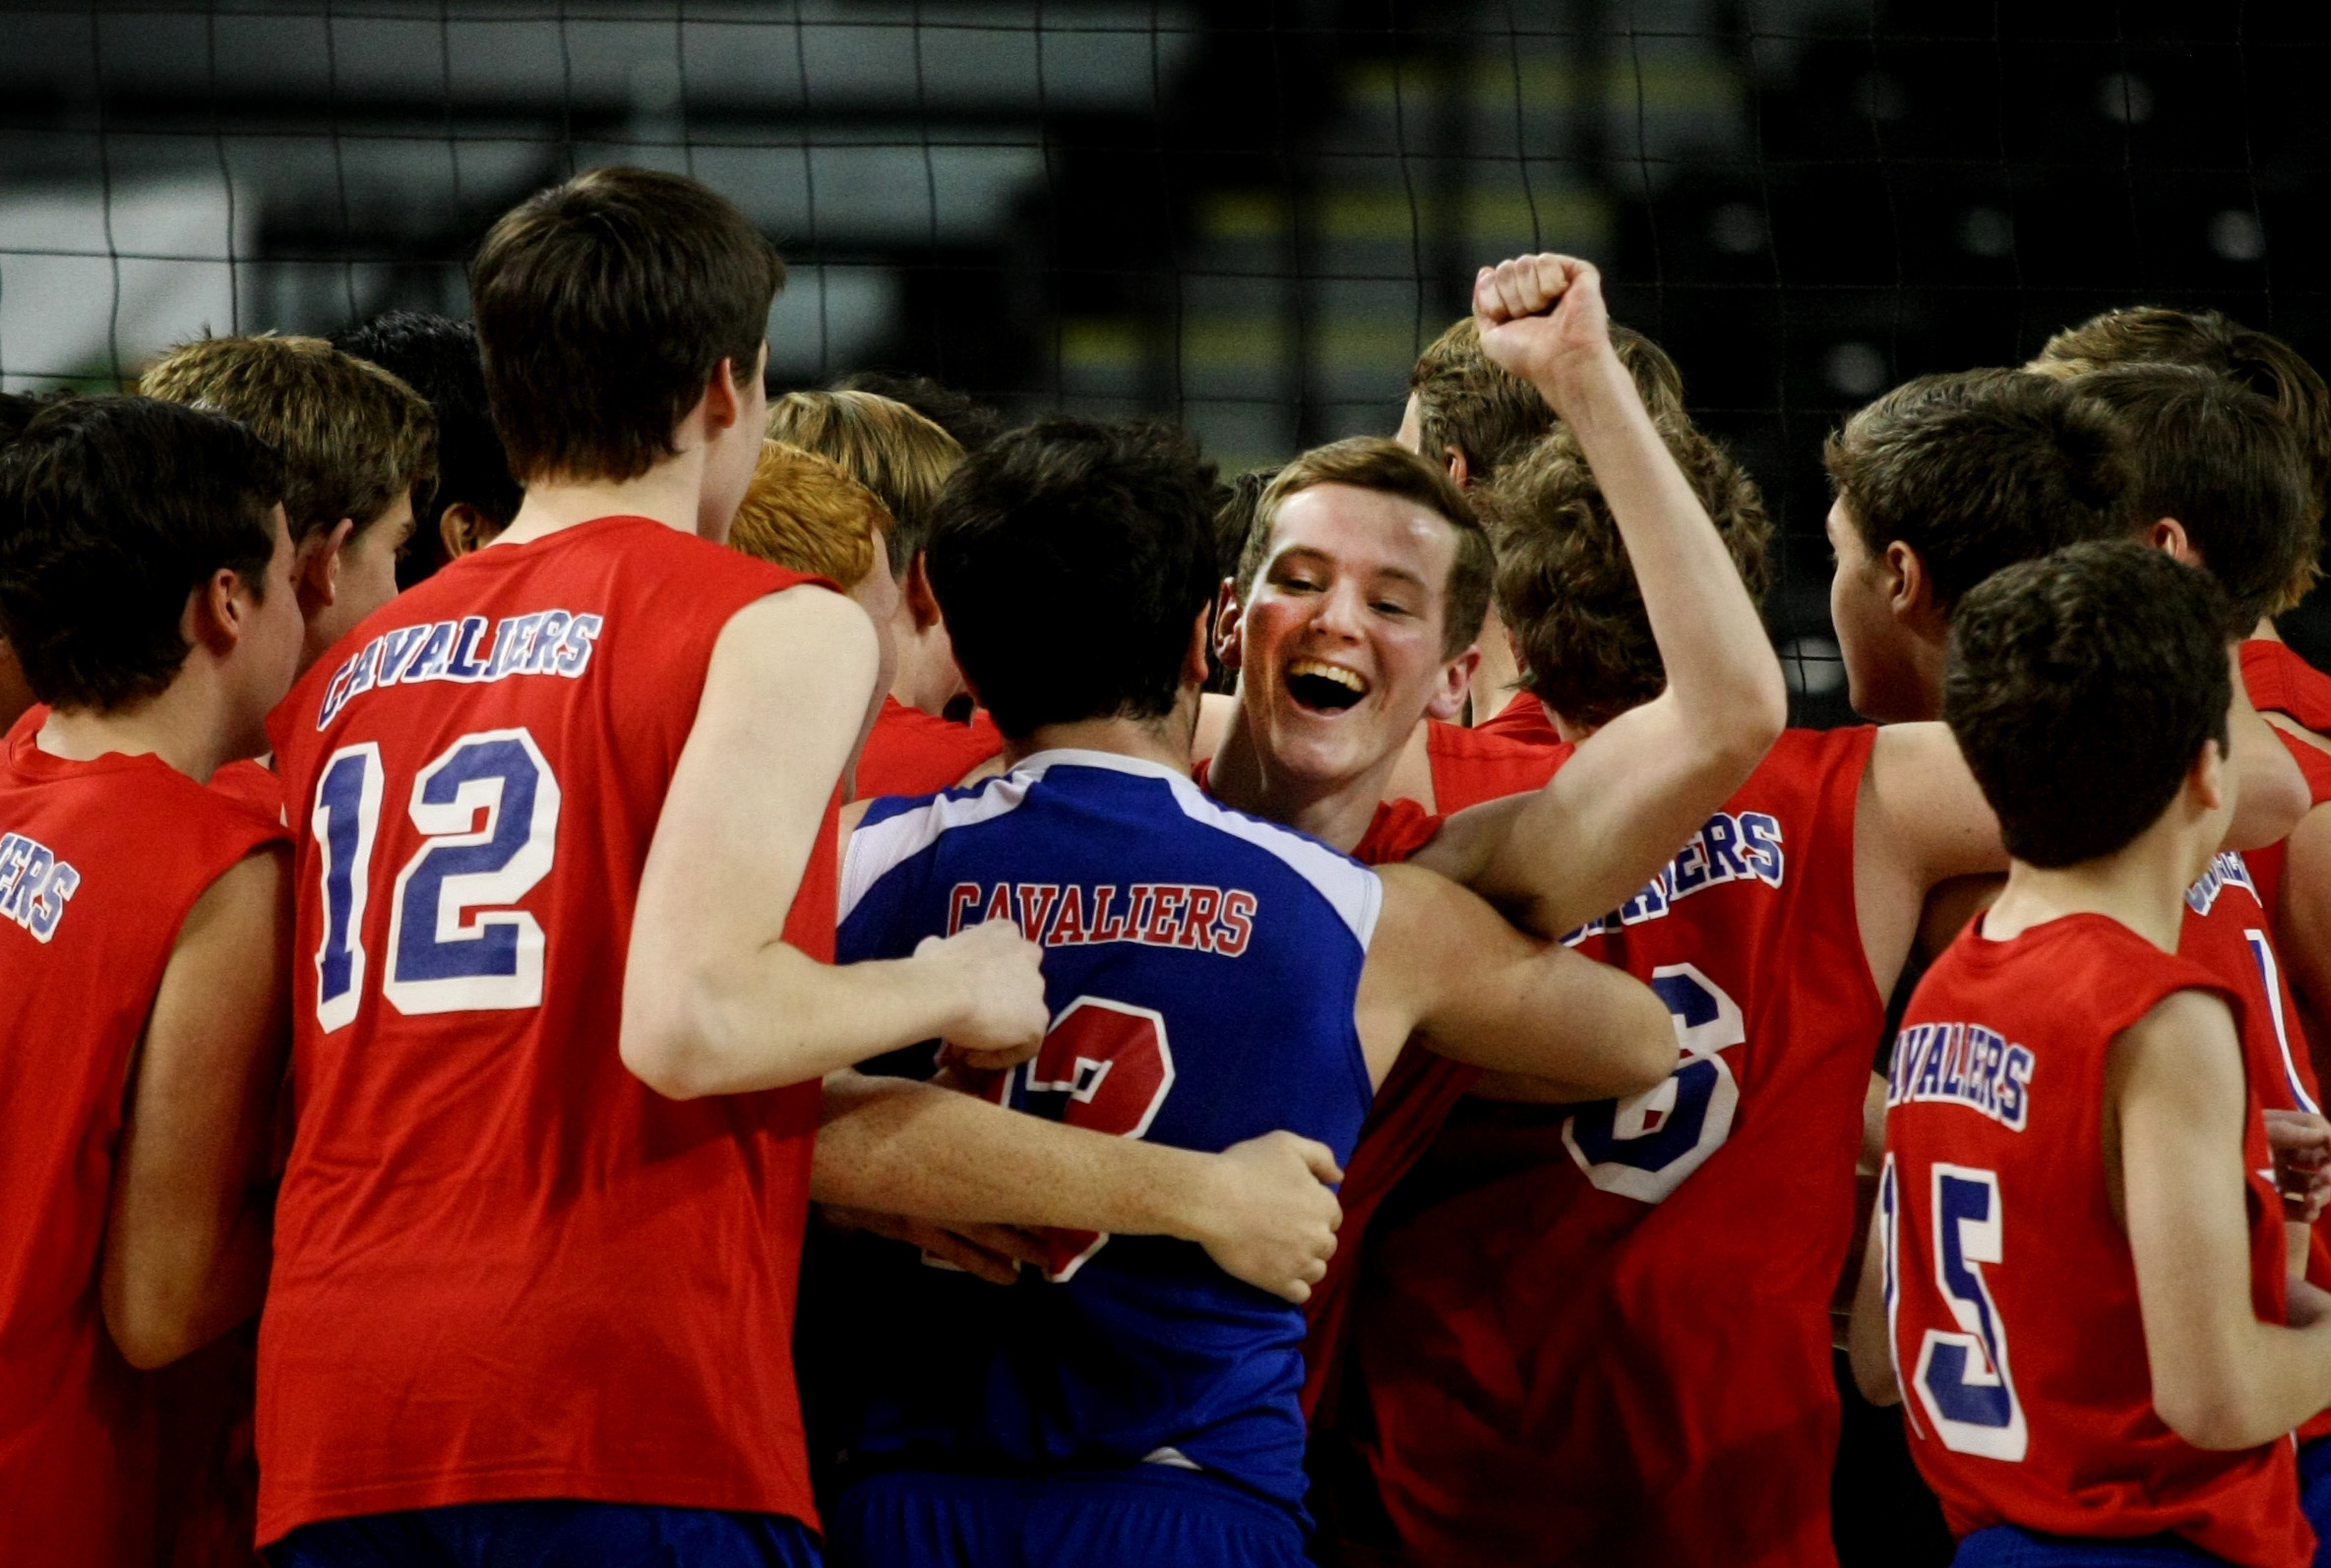 Princess Anne's Noah Banasiewicz celebrates with teammates after winning the Group 5A boys volleyball state championship over Deep Run, Friday, Nov. 21, 2014 at the Siegel Center in Richmond.  (Jason Hirschfeld   For The Virginian-Pilot)